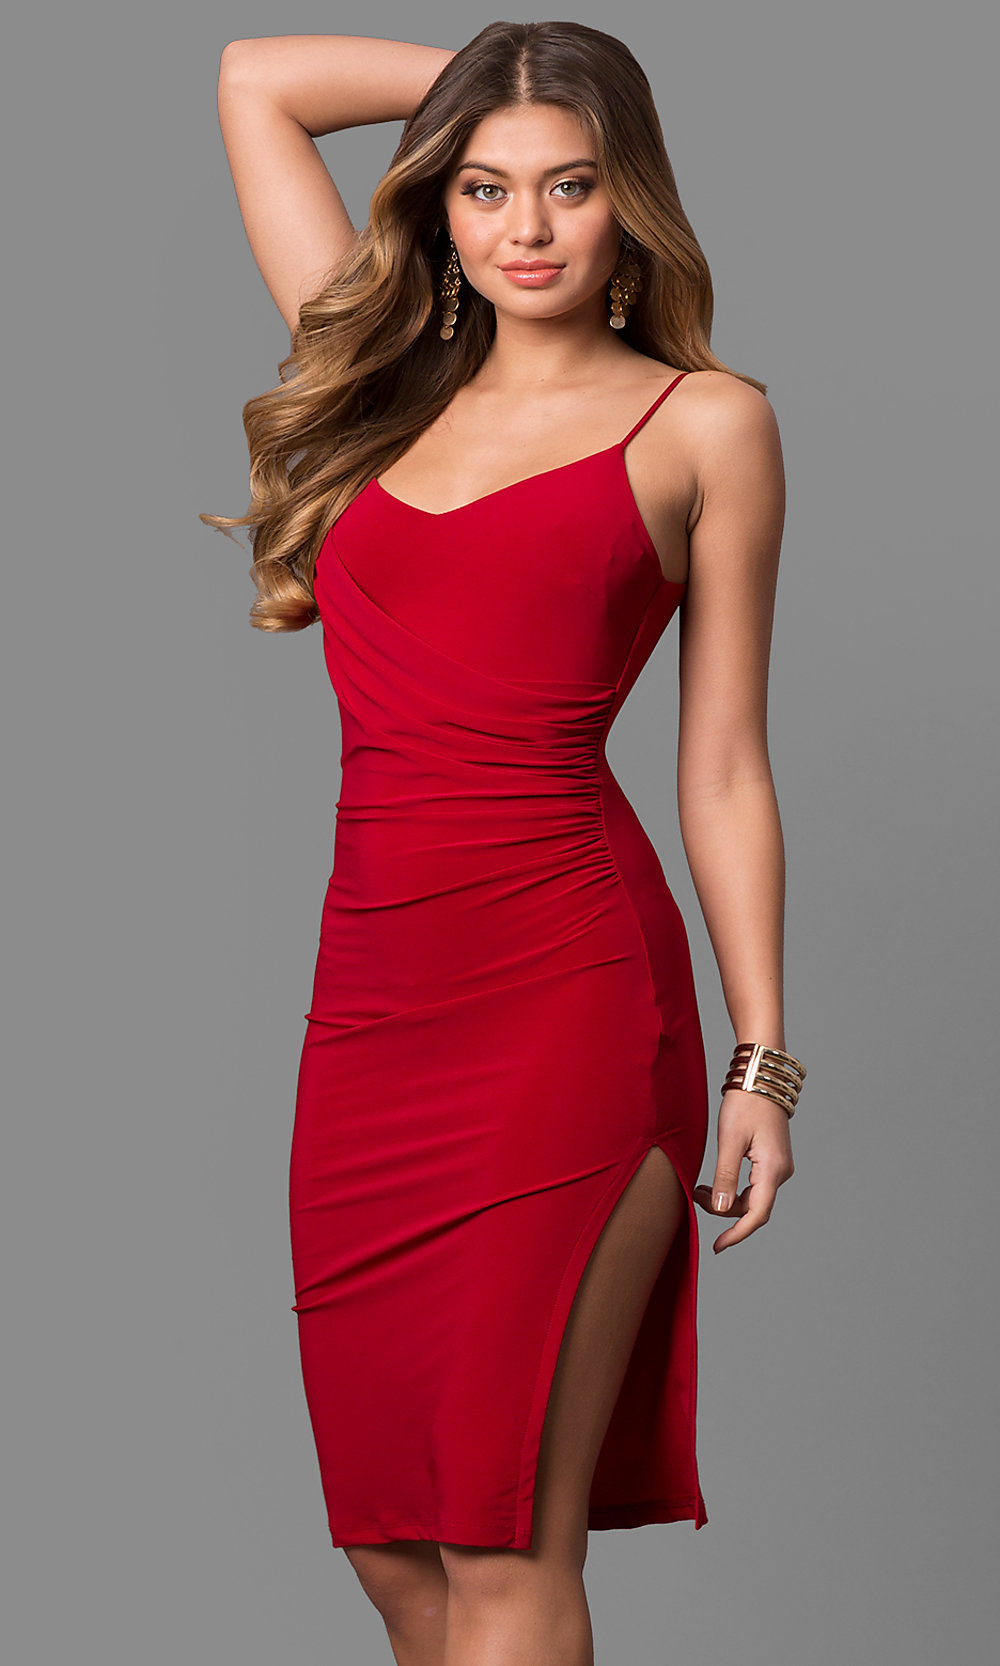 V-Neck Knee-Length Short Red Party Dress - PromGirlRed Dresses